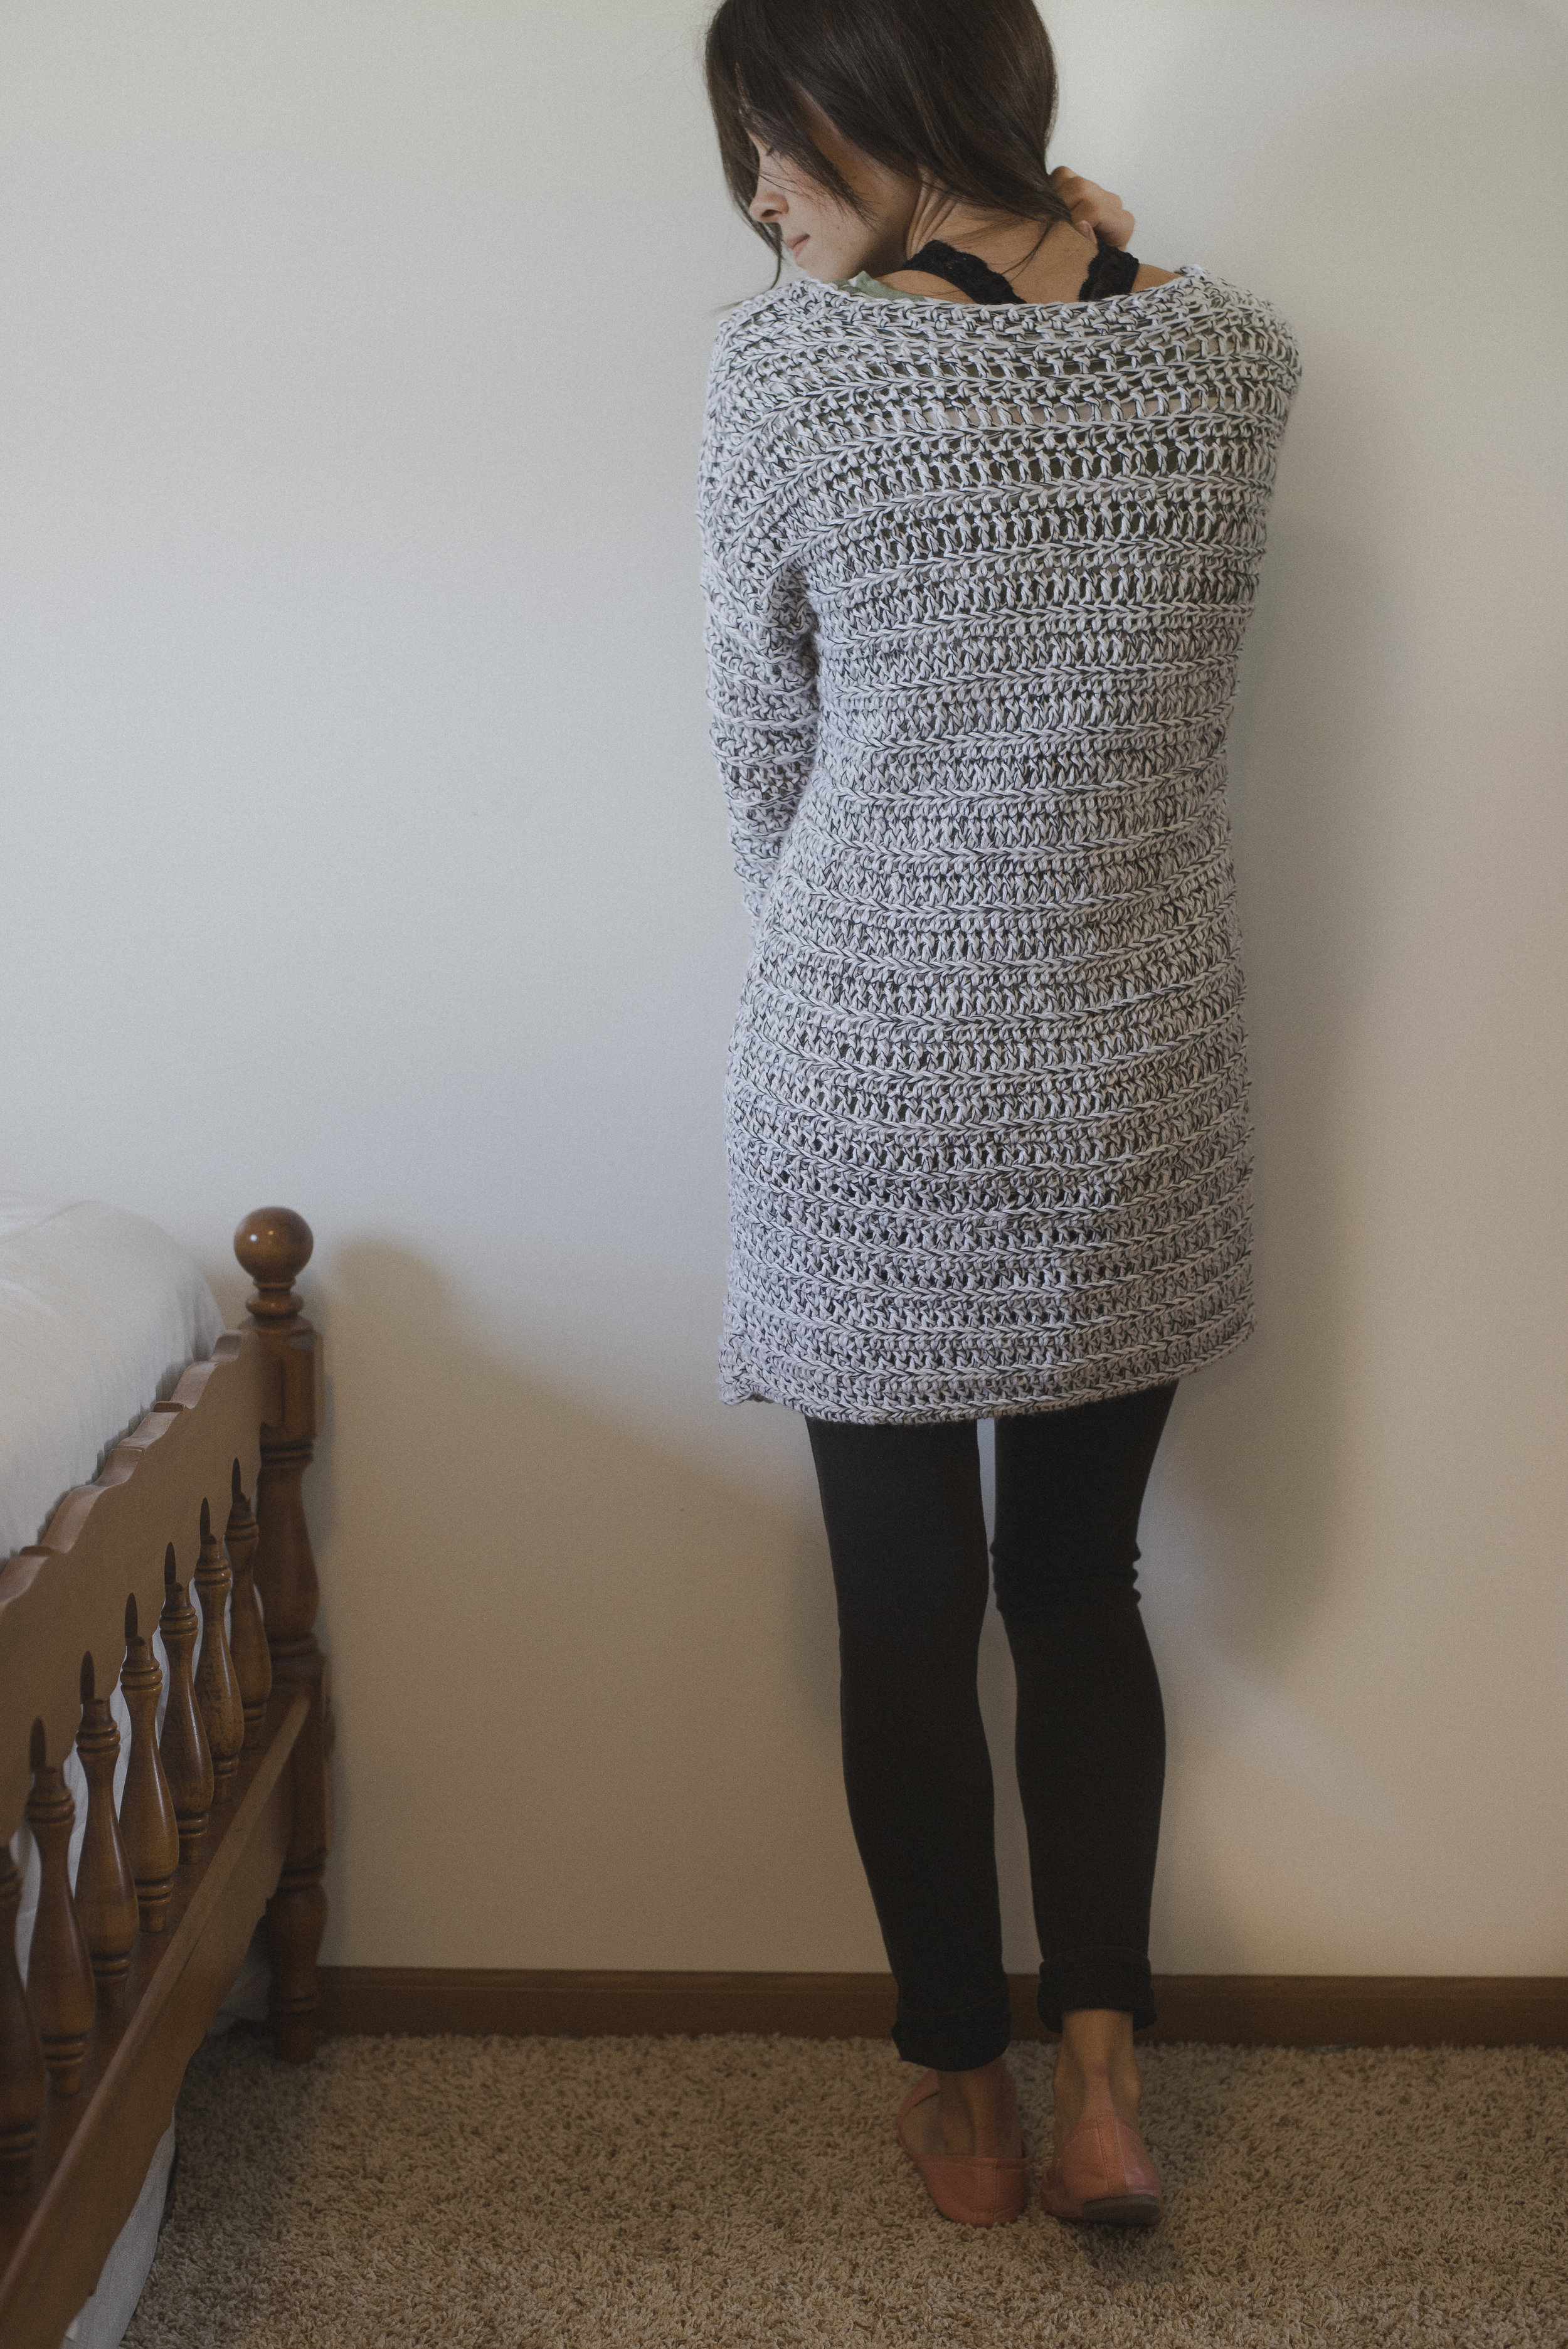 Free Crochet Pattern For The Marley Cardi A Long Chunky Cardigan Sweater Megmade With Love